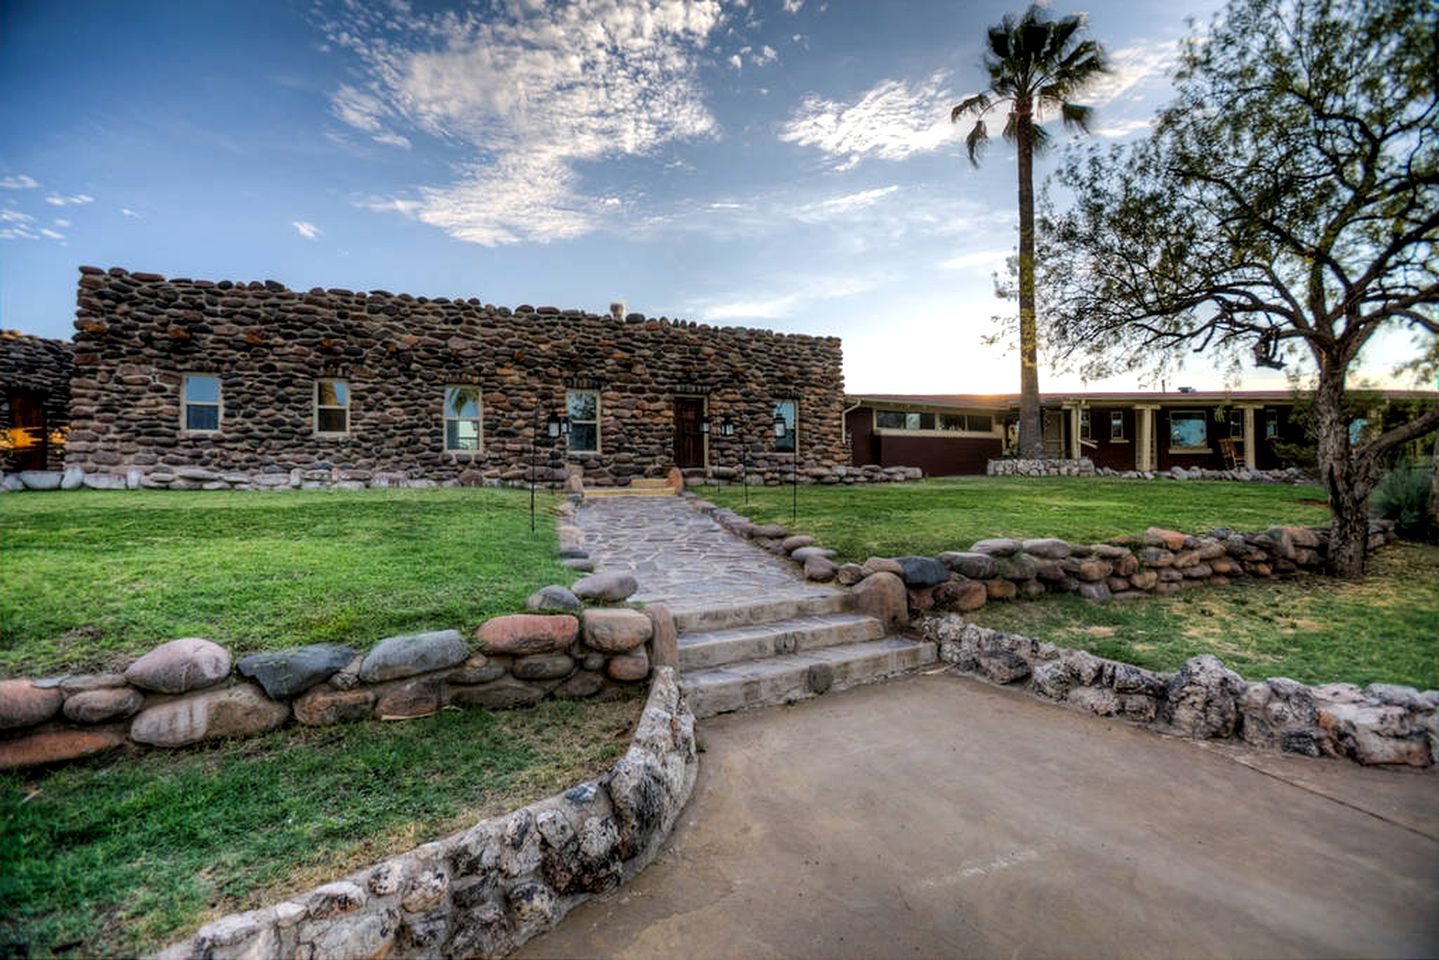 Entryway leading to stone cottage surrounded by palm trees and grass near Phoenix, Arizona.